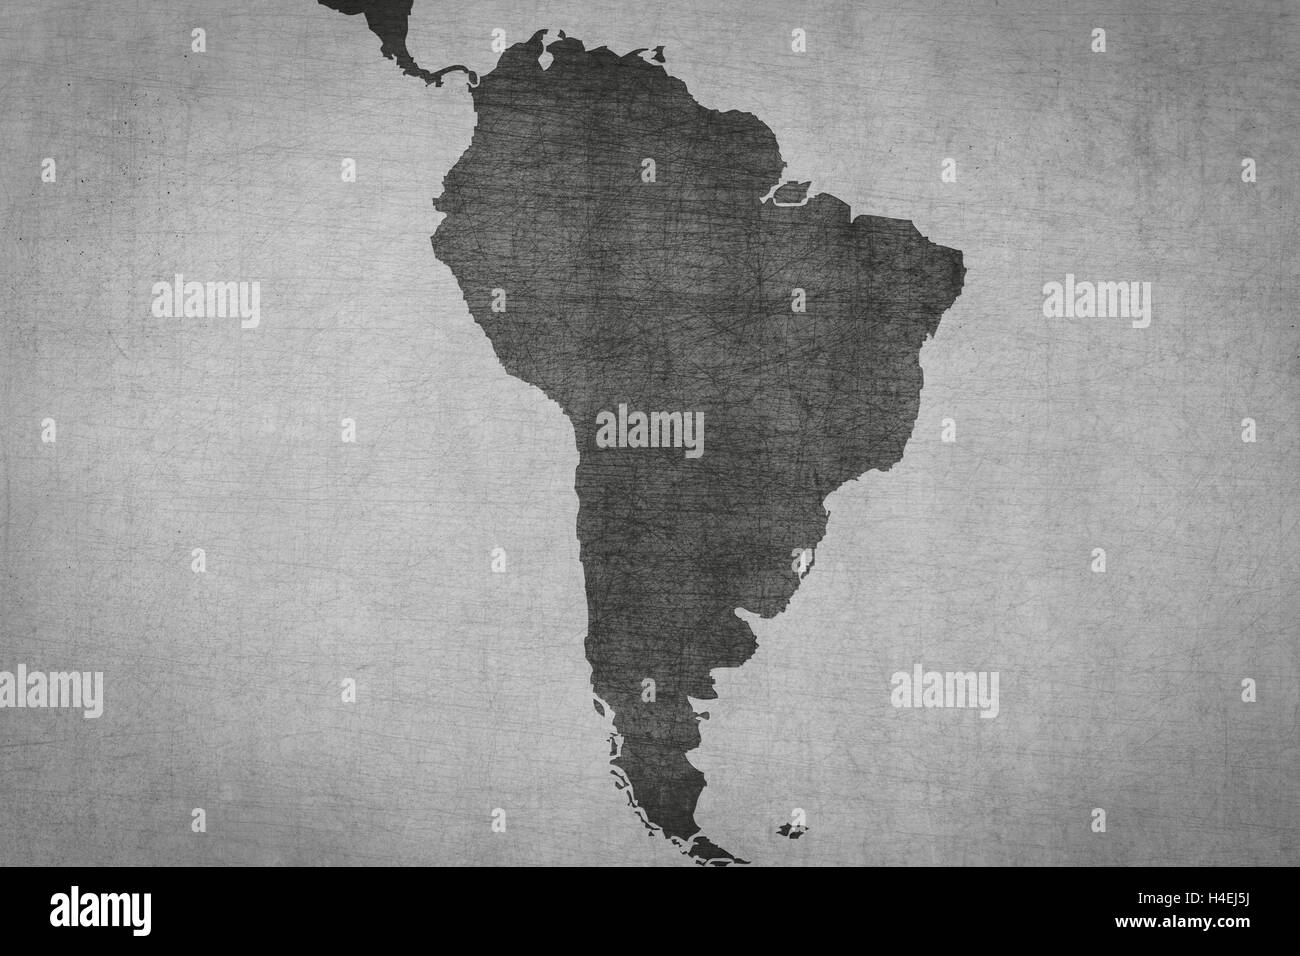 Latin America South America Map.South America Map On Vintage Background Grungy Texture Latin